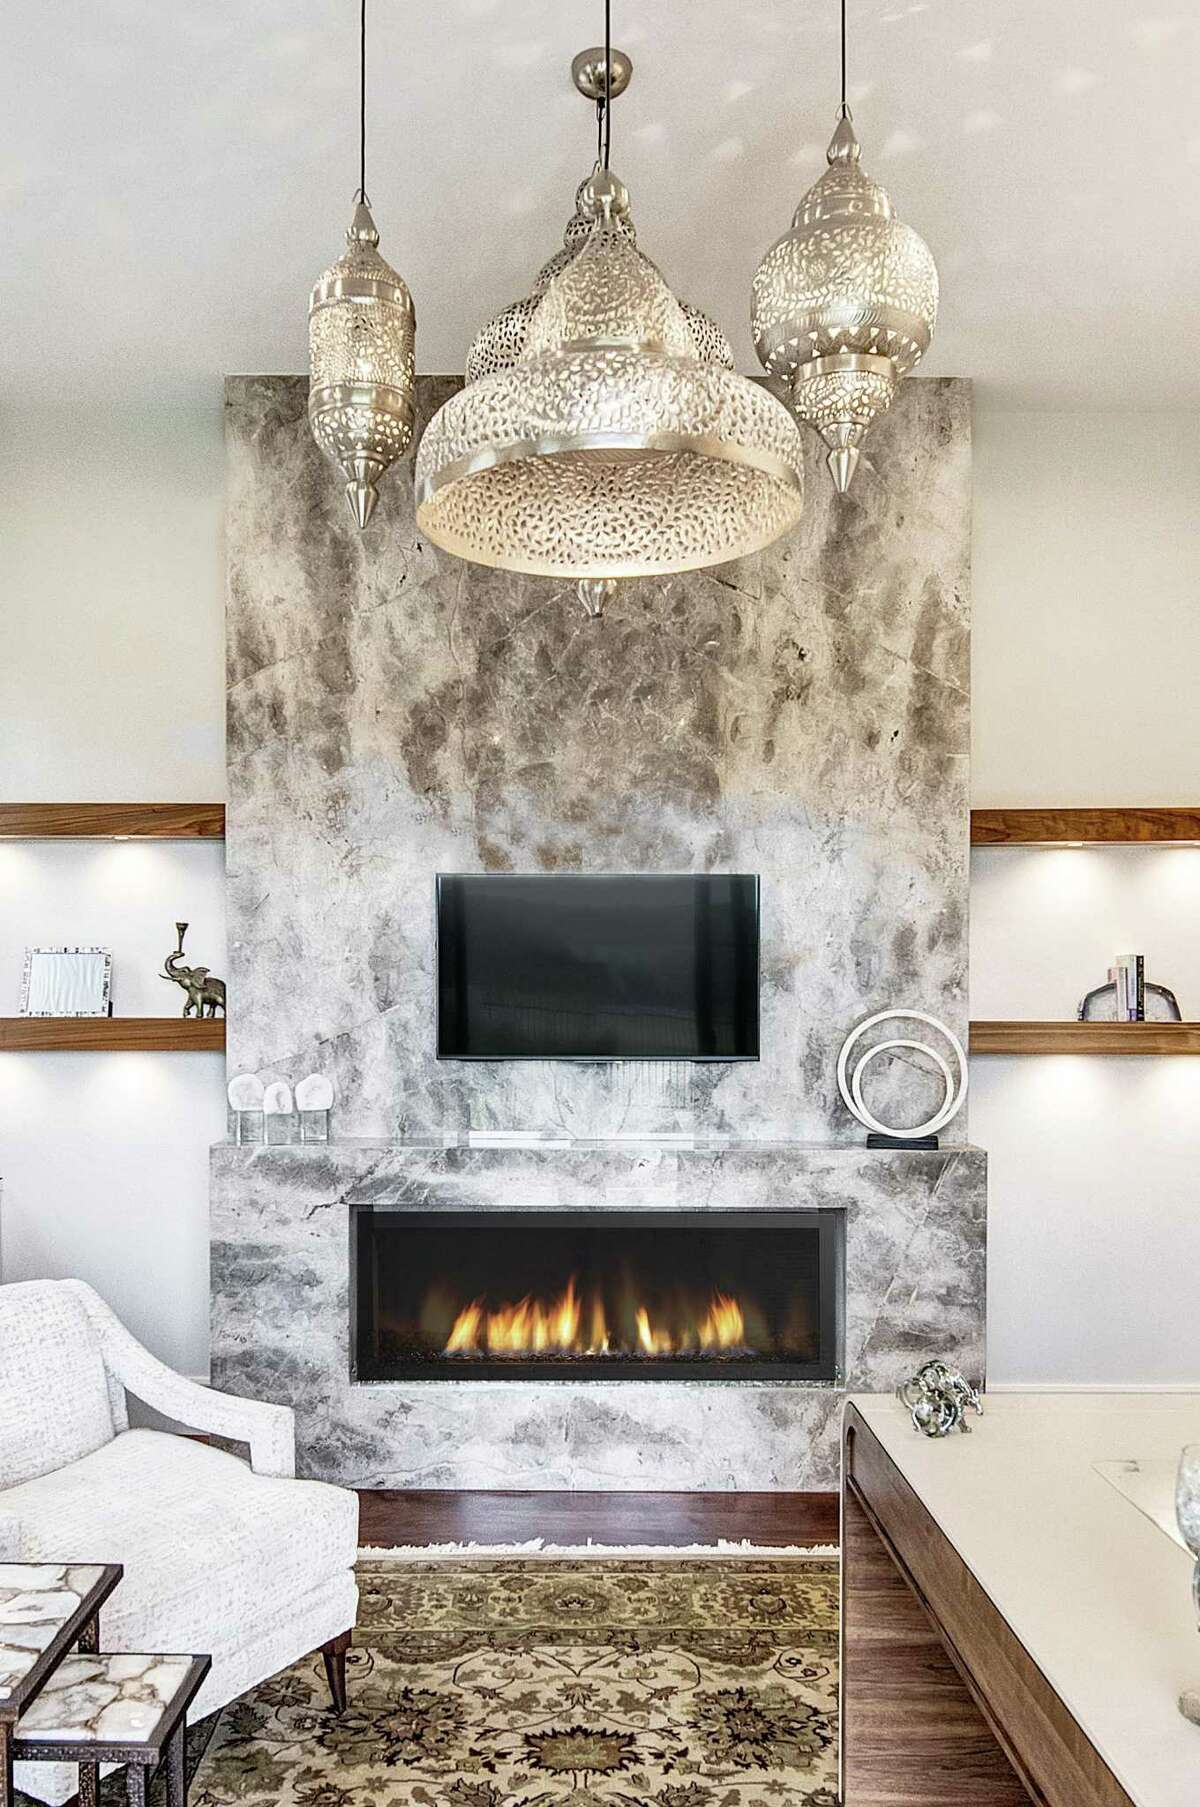 Fior de Bosco marble from Aria Stone Gallery was used around this fireplace.